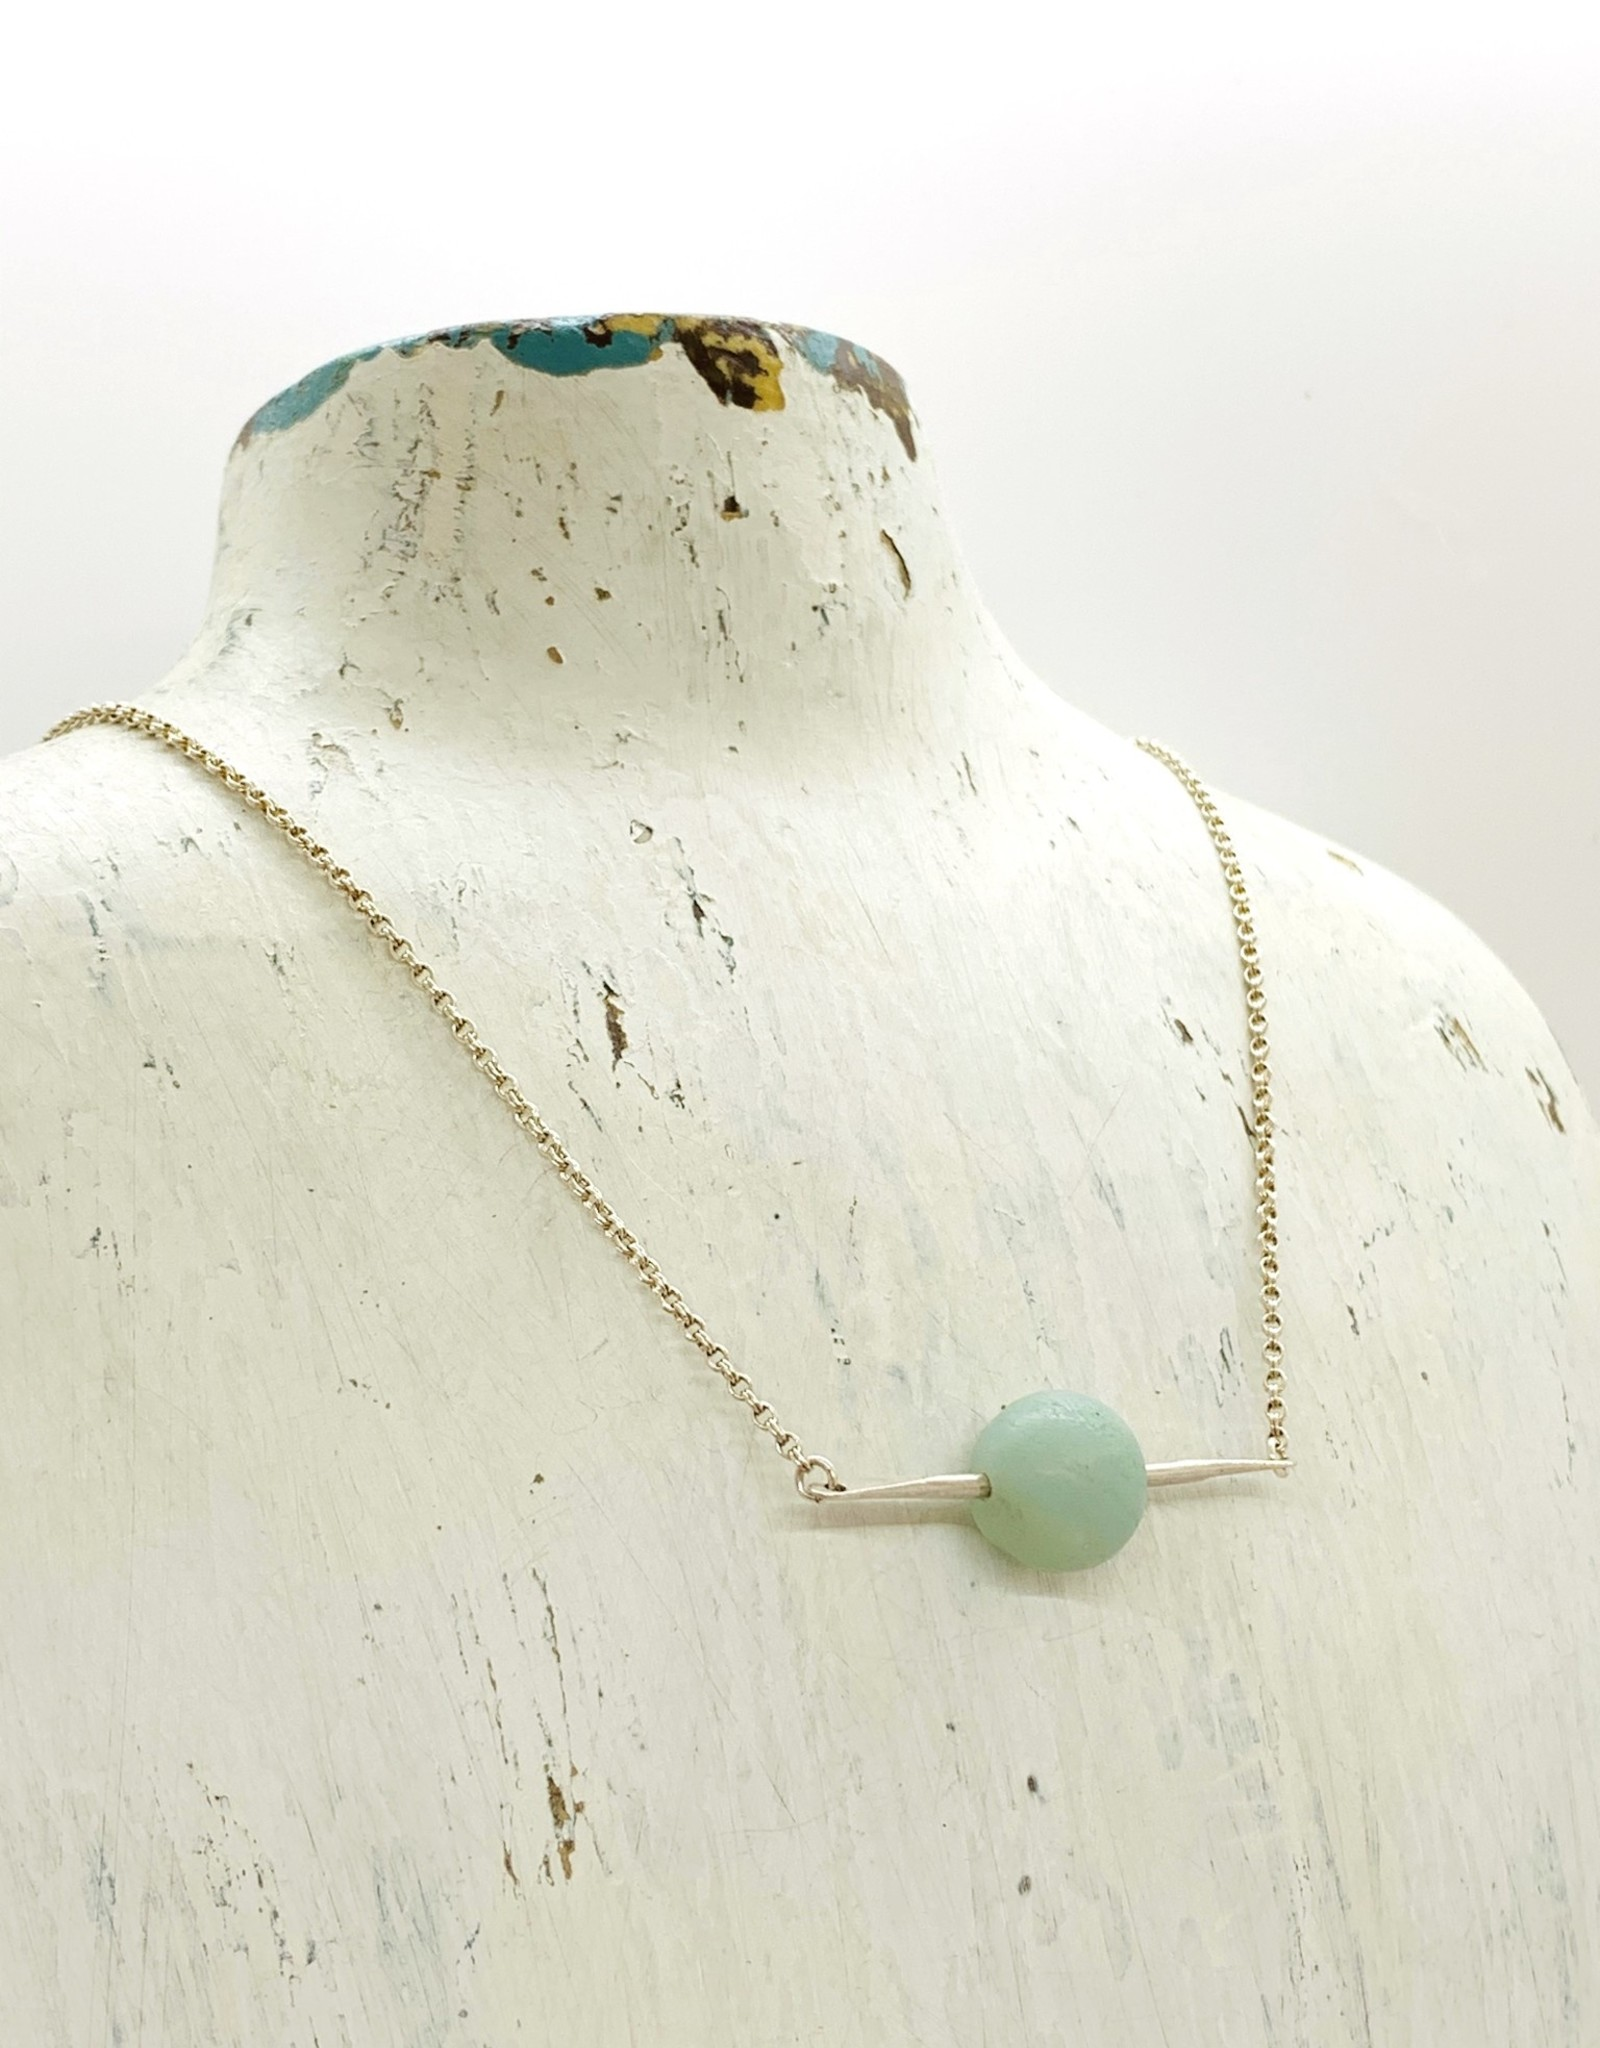 Handmade Silver Necklace with large matte amazonite, shiny bar, shiny silver chain